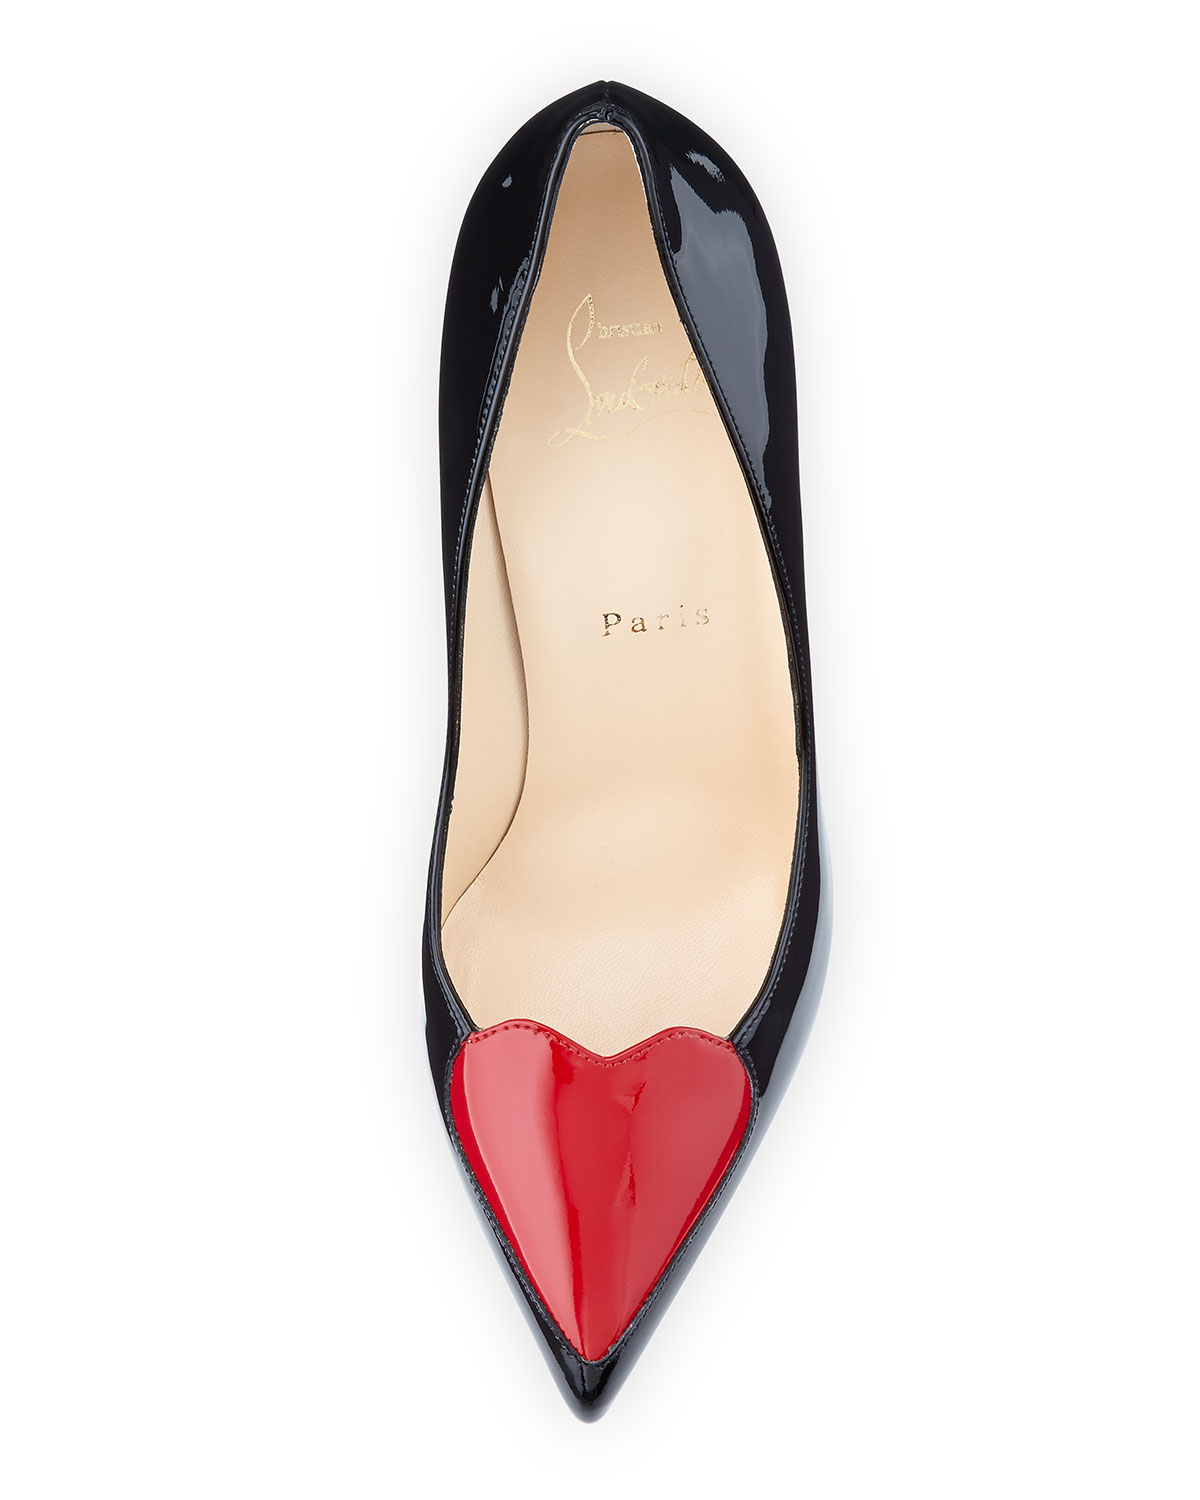 c258aeec99b8 ... order christian louboutin cora patent heart red sole pump black red  neiman marcus fc773 cb06a